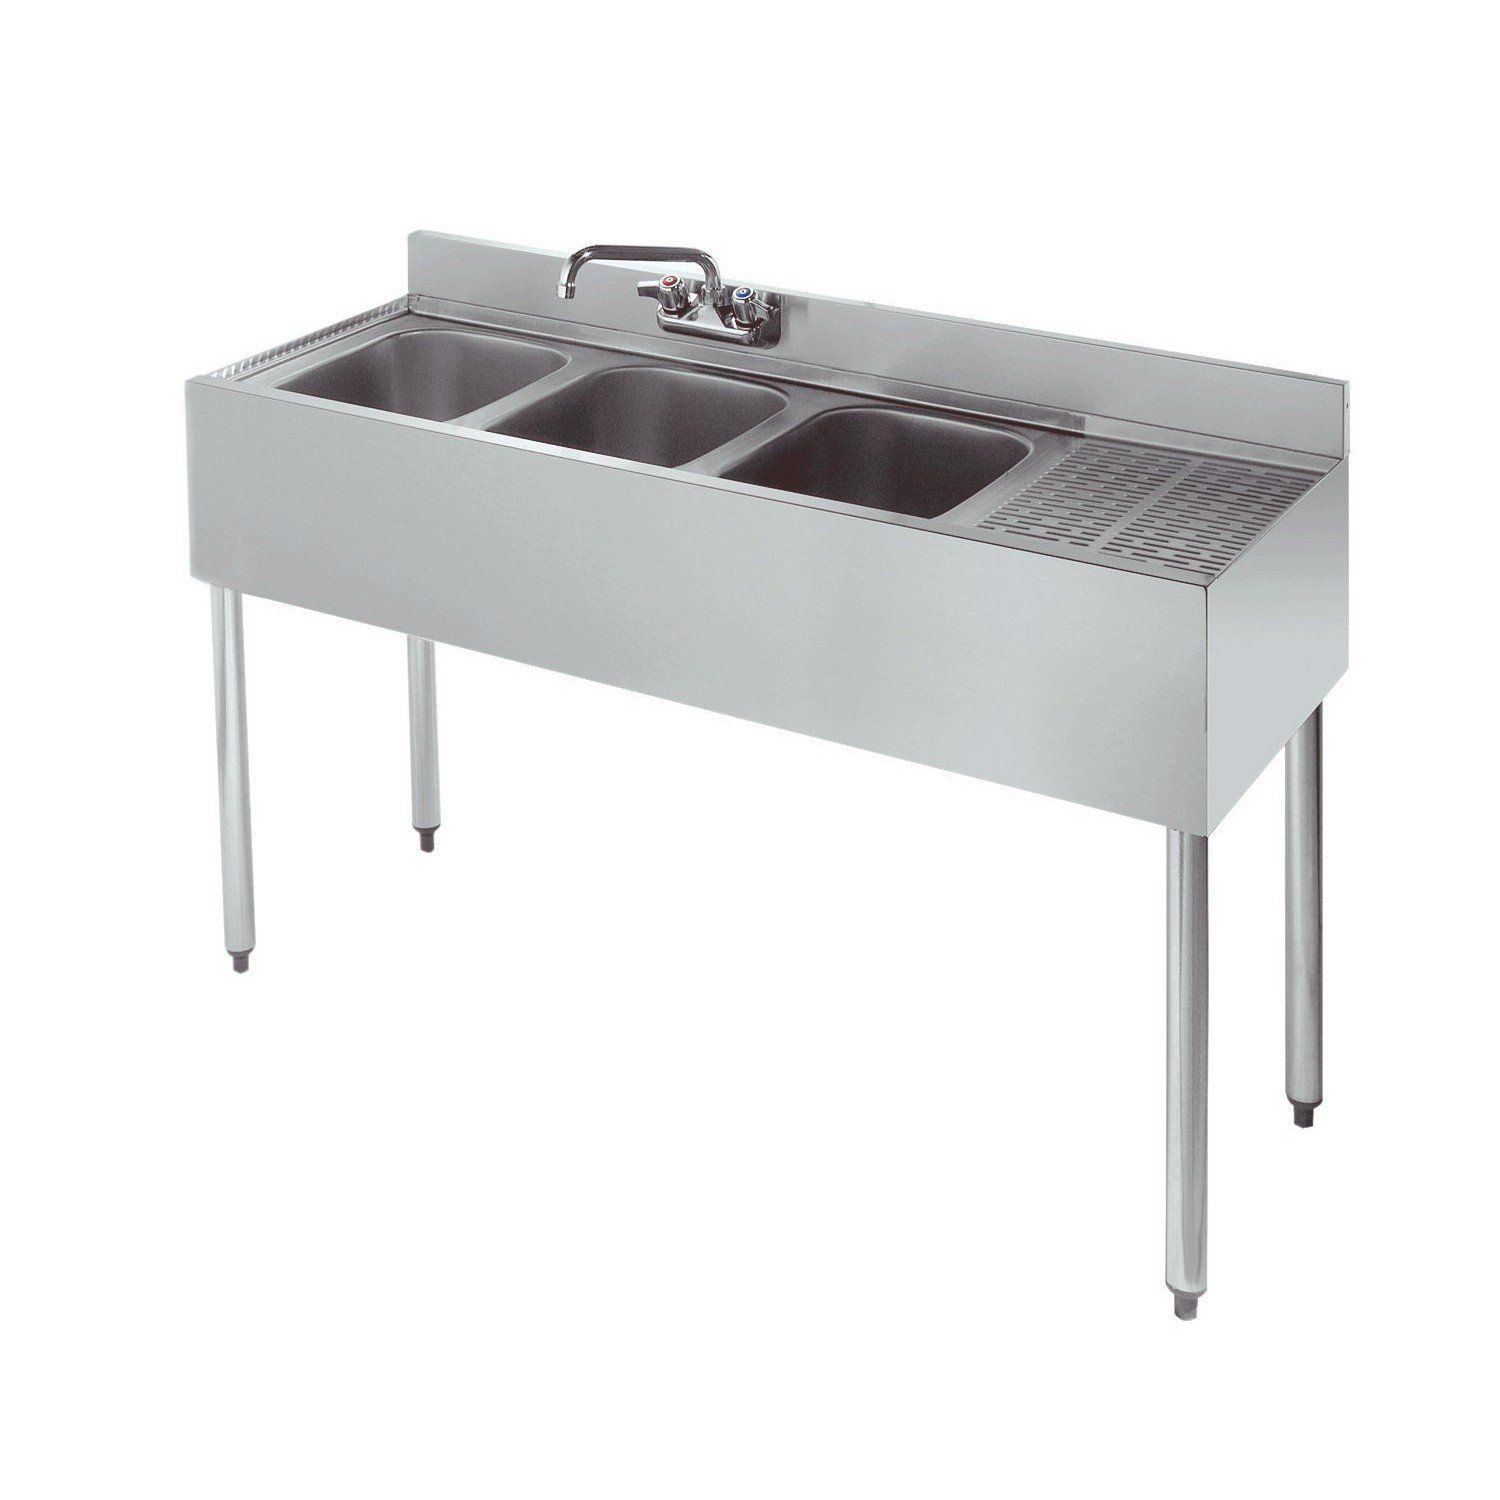 Stainless Steel 3 Compartment Underbar Sink 48 With Drainboard On